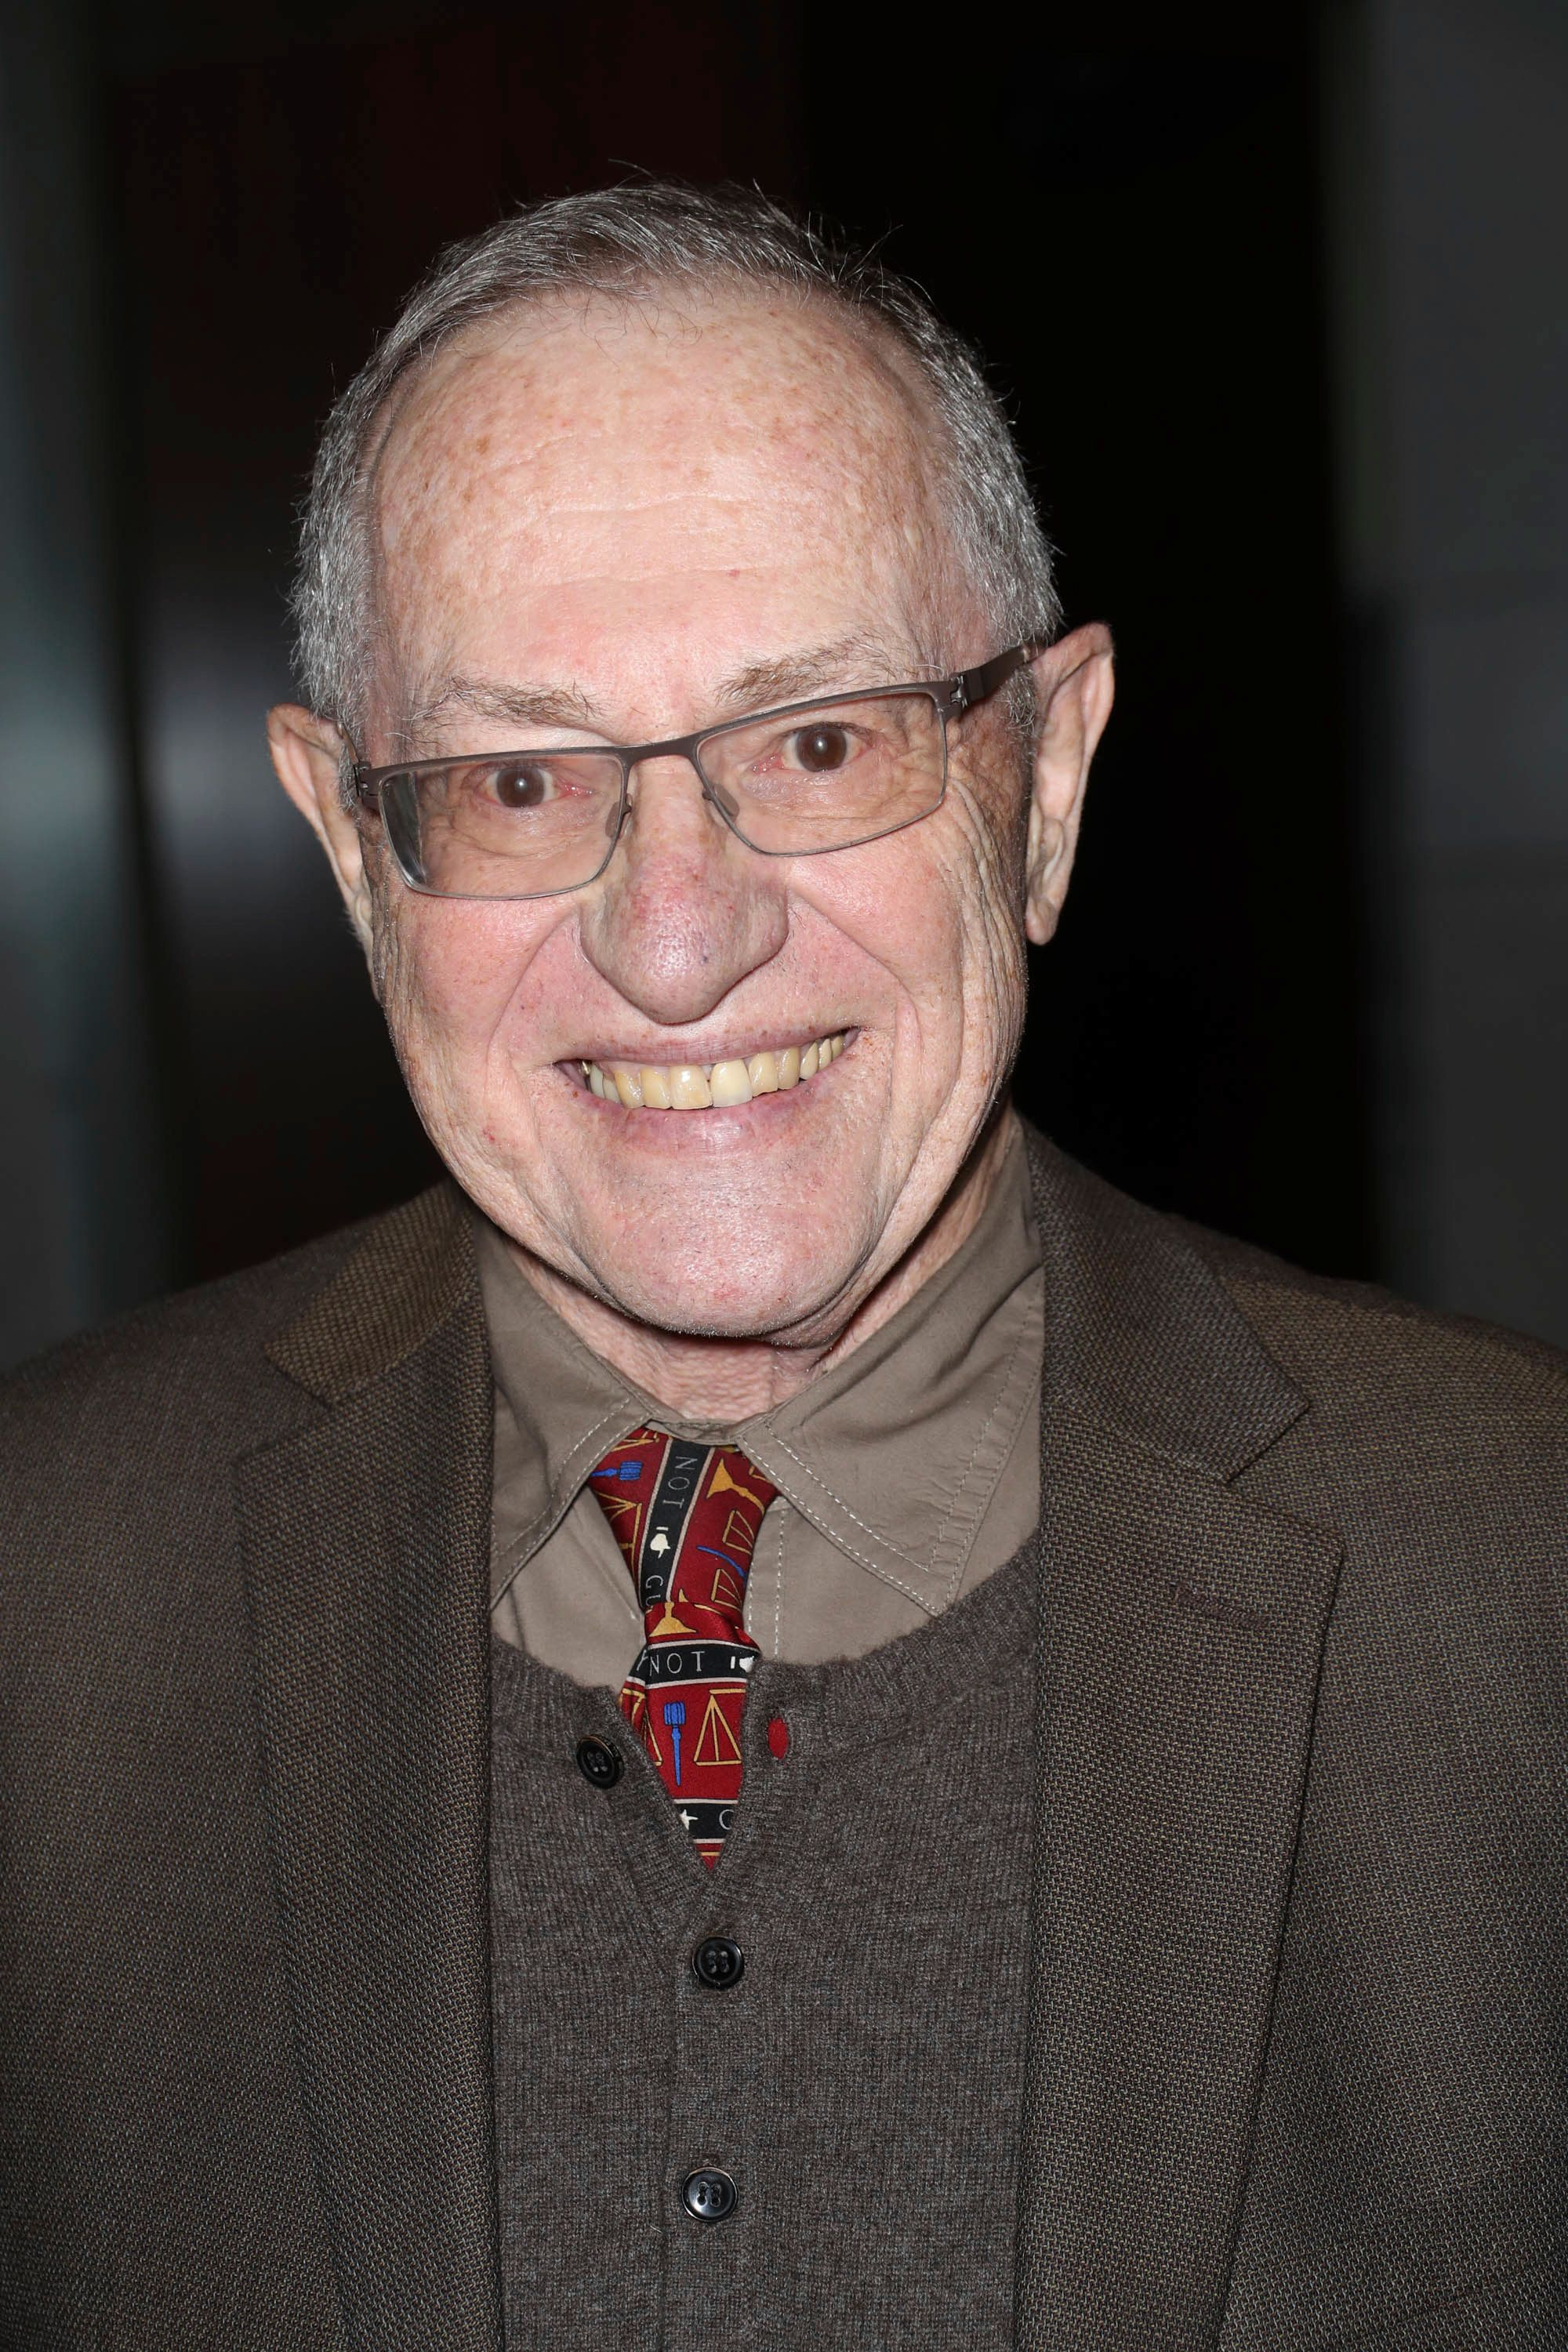 Photo by: John Nacion/STAR MAX/IPx 2018 4/2/18 Alan Dershowitz at a book launch for 'The Geraldo Show' in New York City.